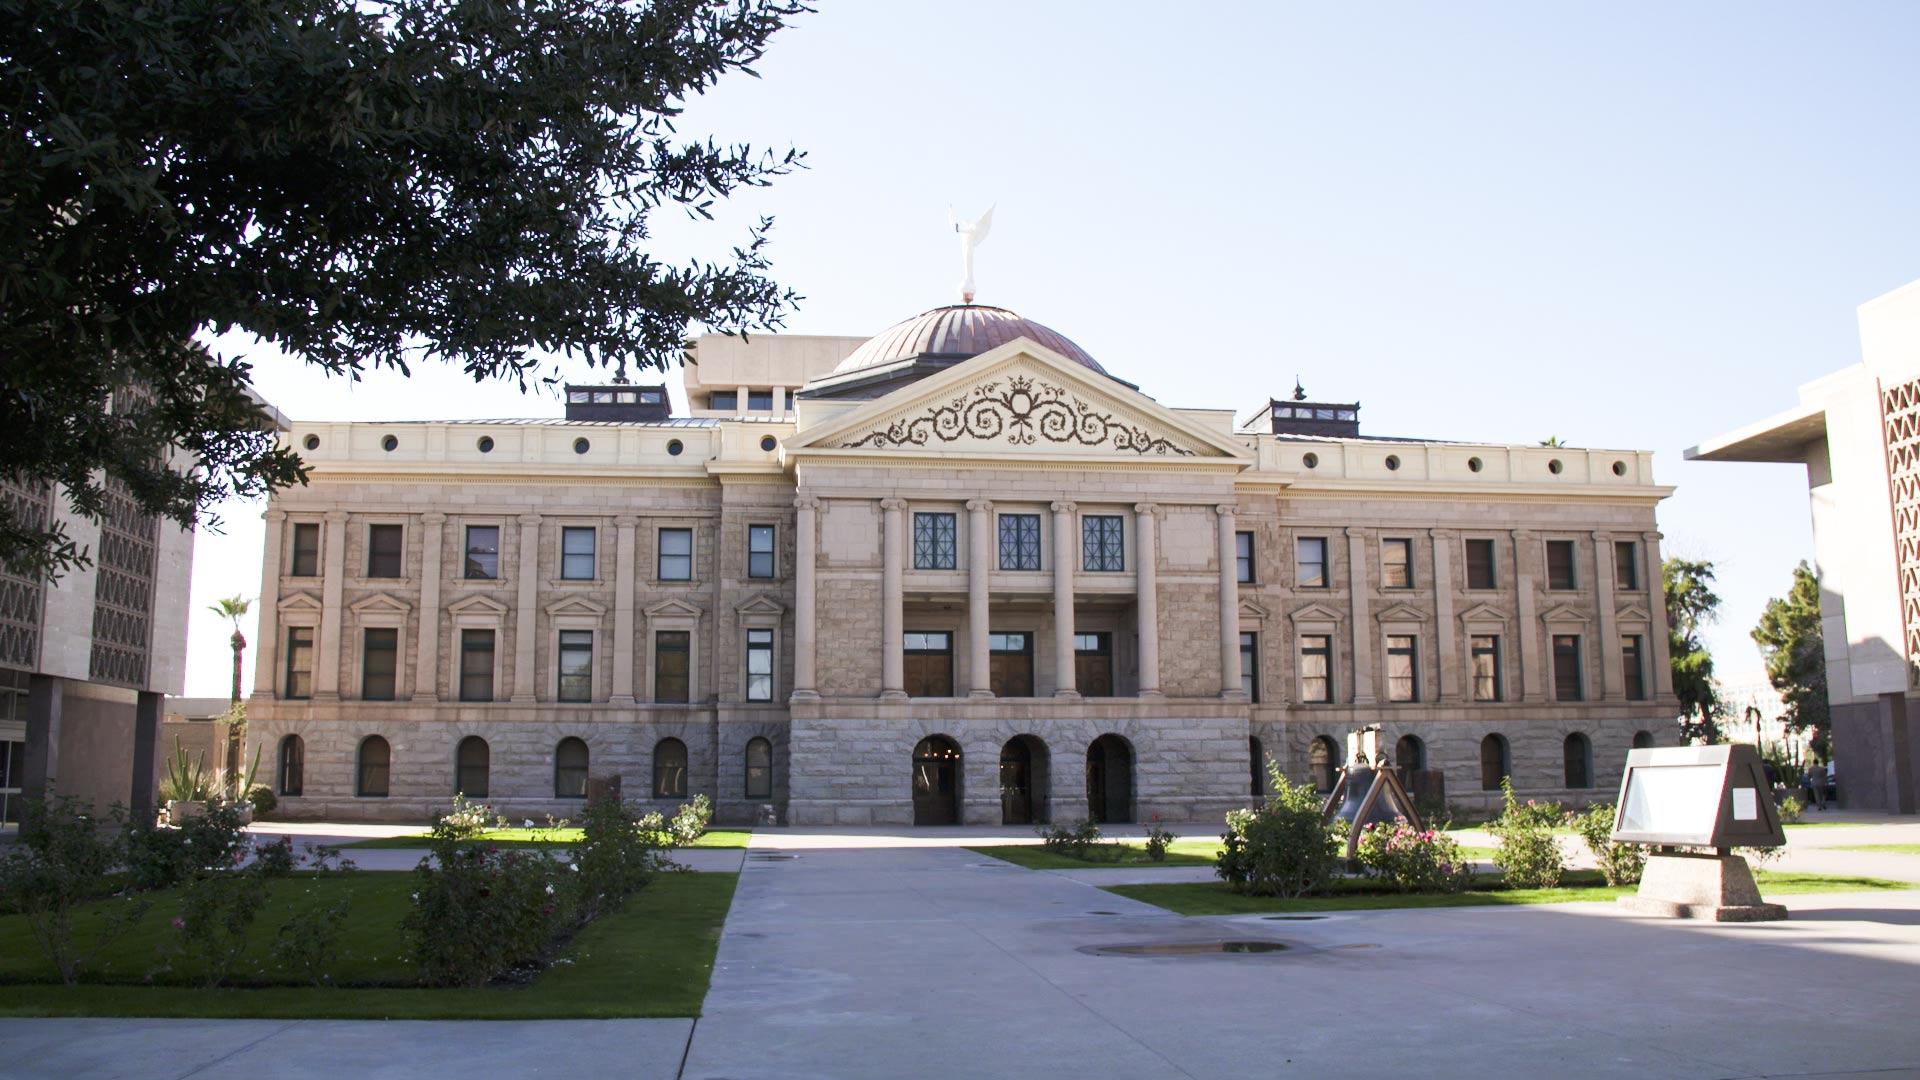 The Arizona Capitol.